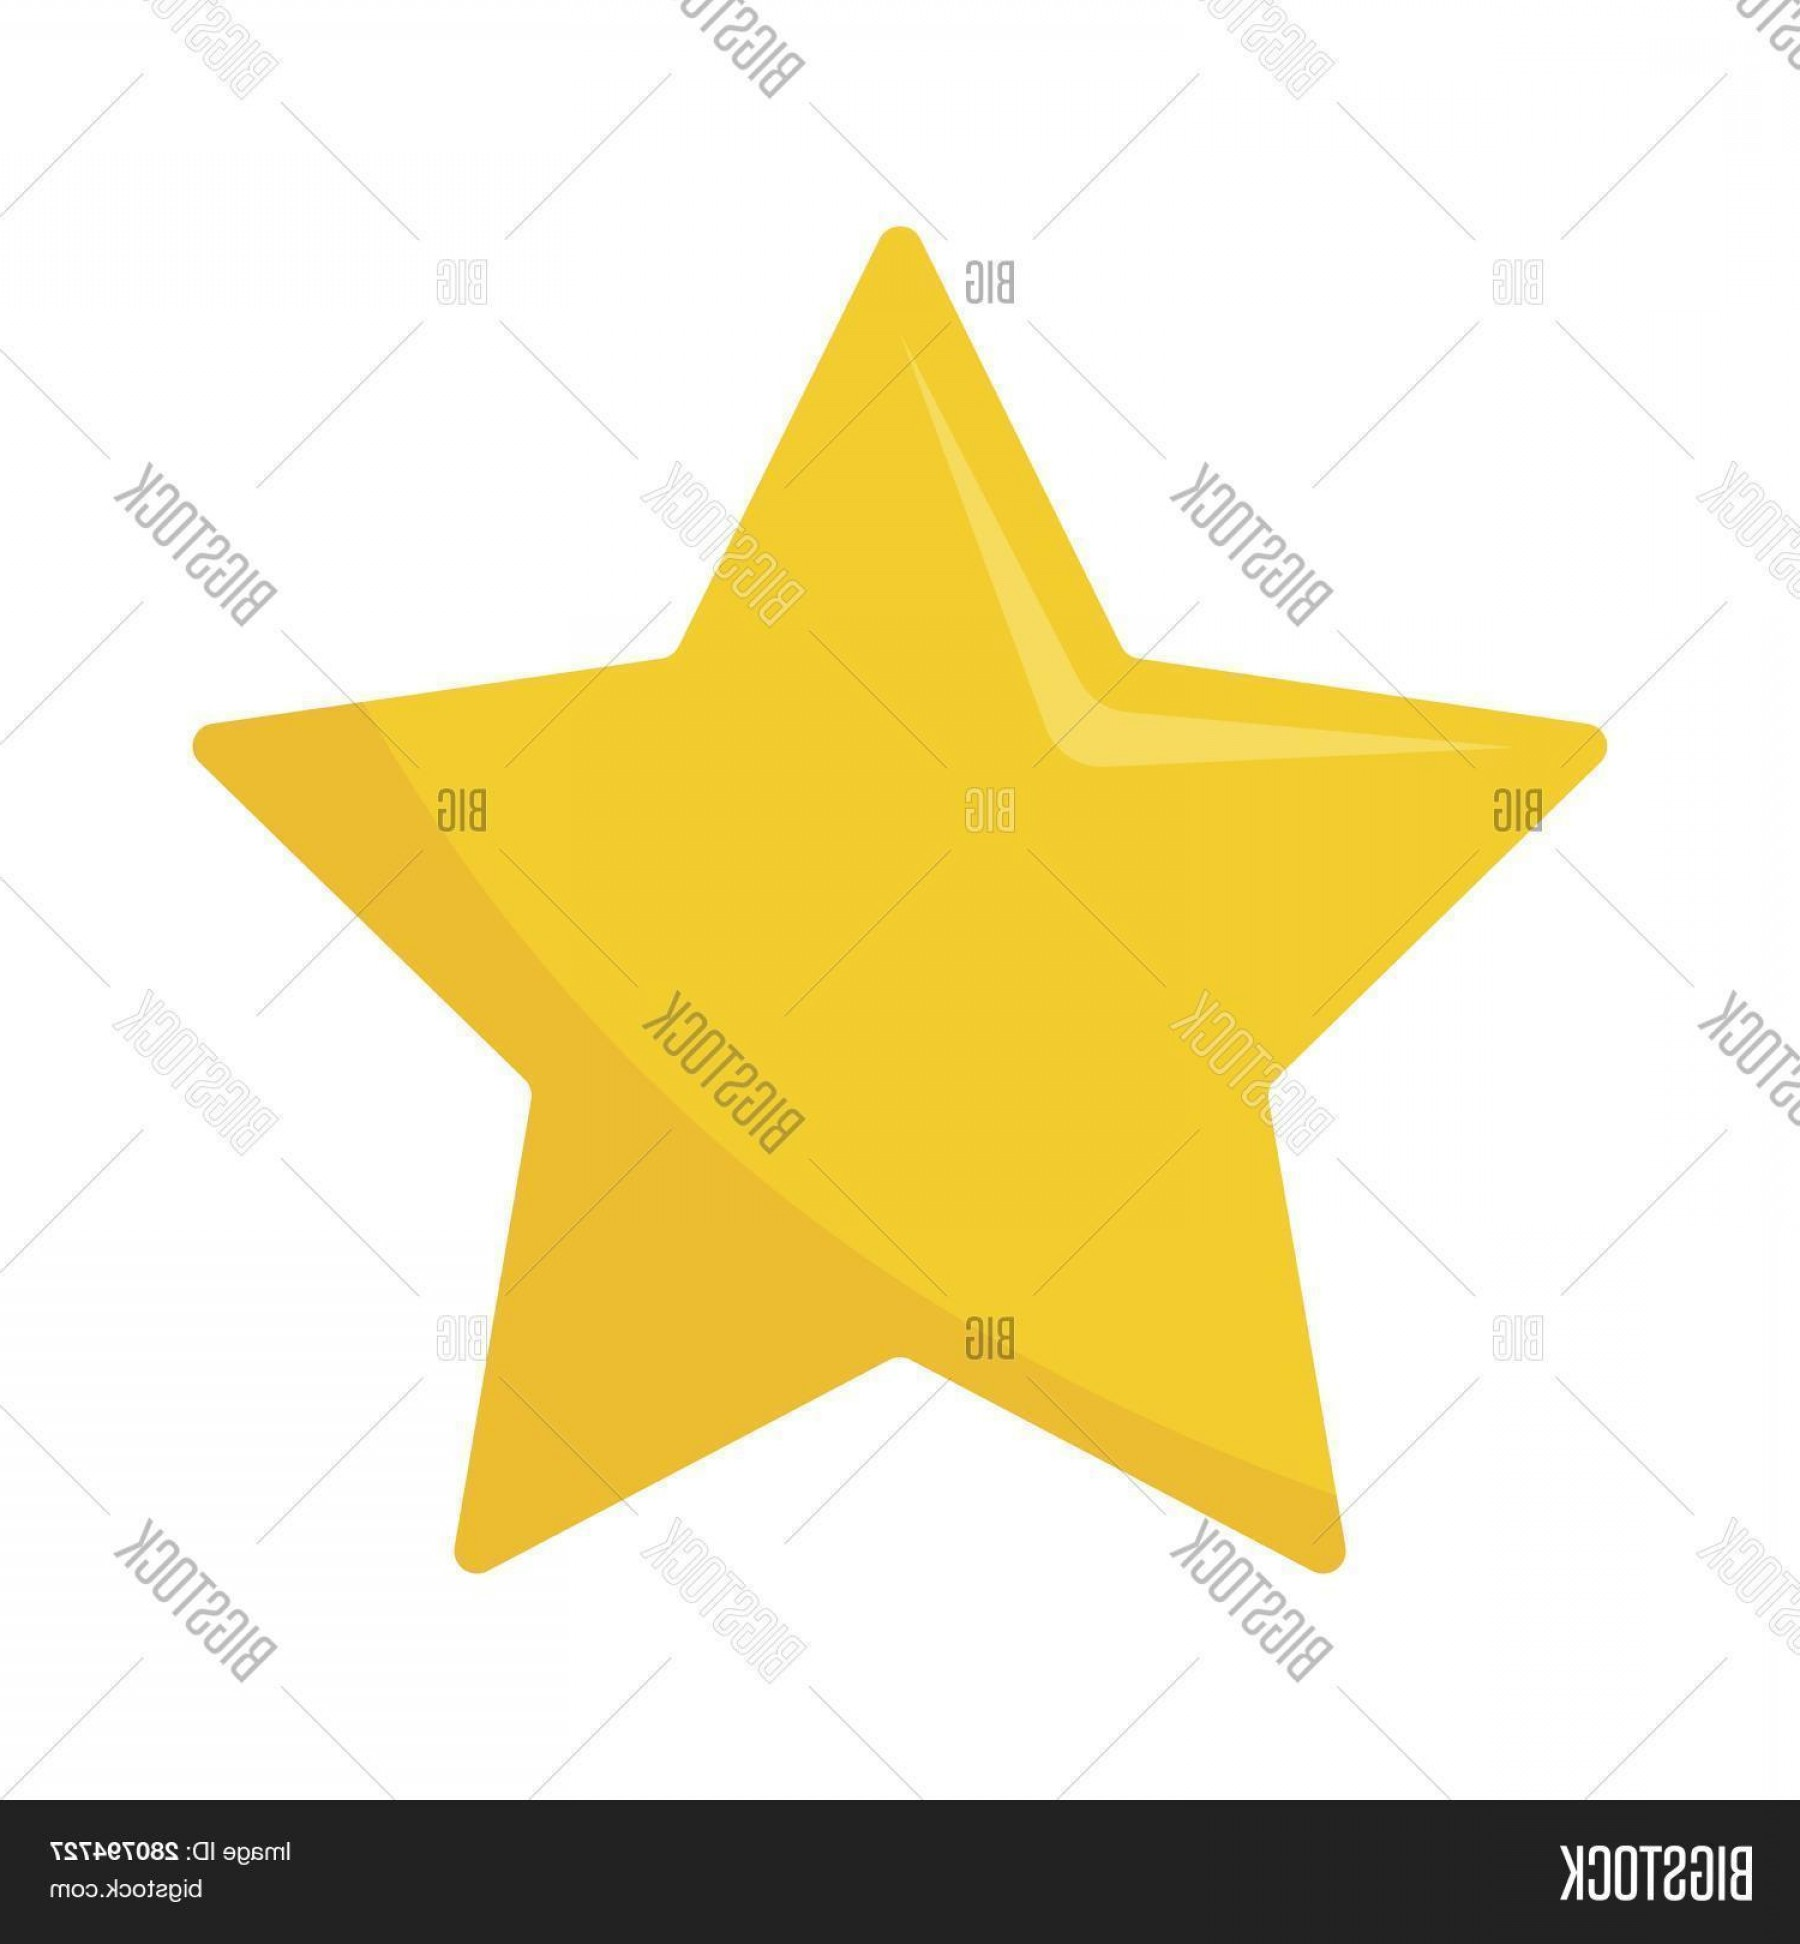 Free Vector Star: Stock Photo Star Icon Vectorc Star Icon Epsc Star Icon Jpgc Star Icon Picturec Star Icon Appc Star Icon Webc Sta